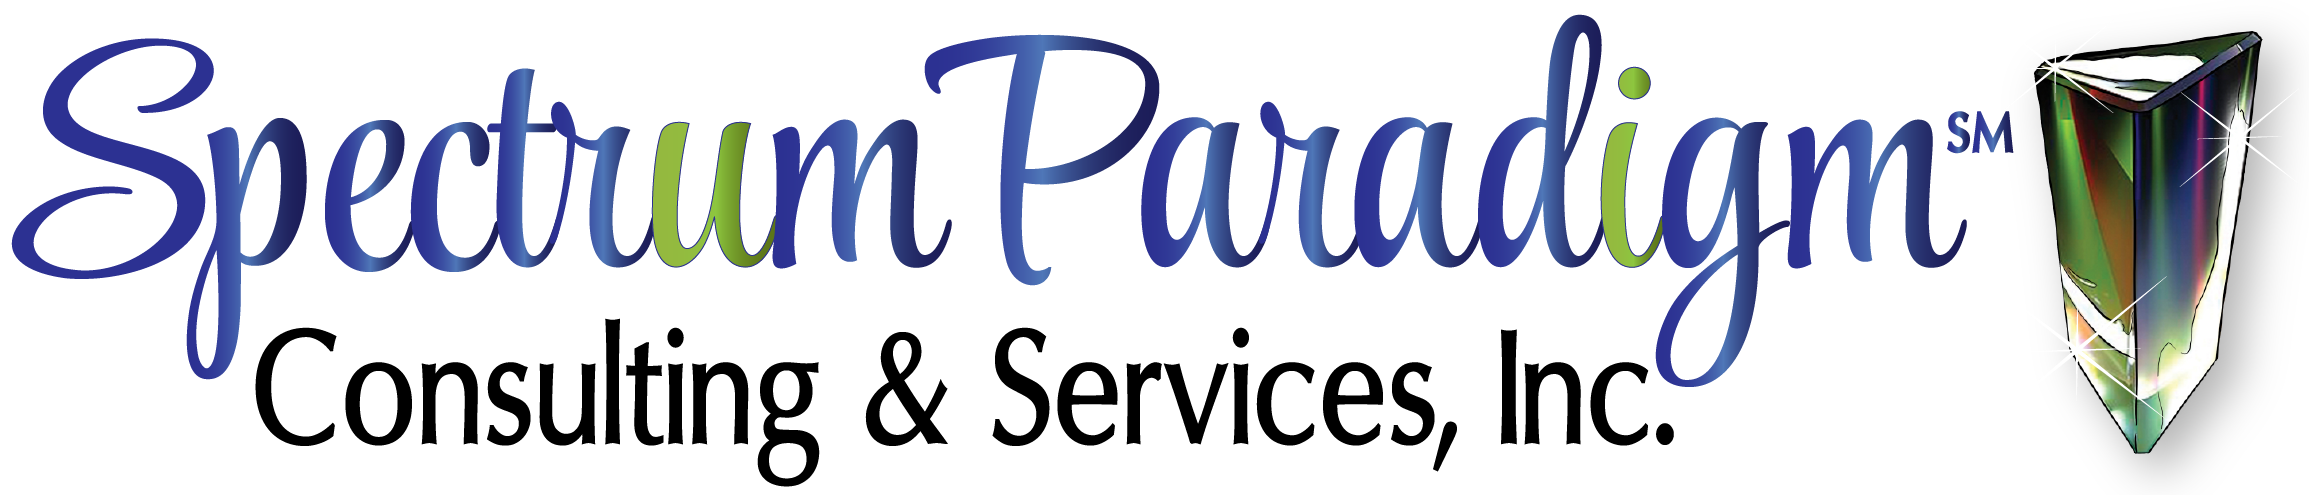 Spectrum Paradigm Consulting & Services, Inc. | Branding & Graphic Designs